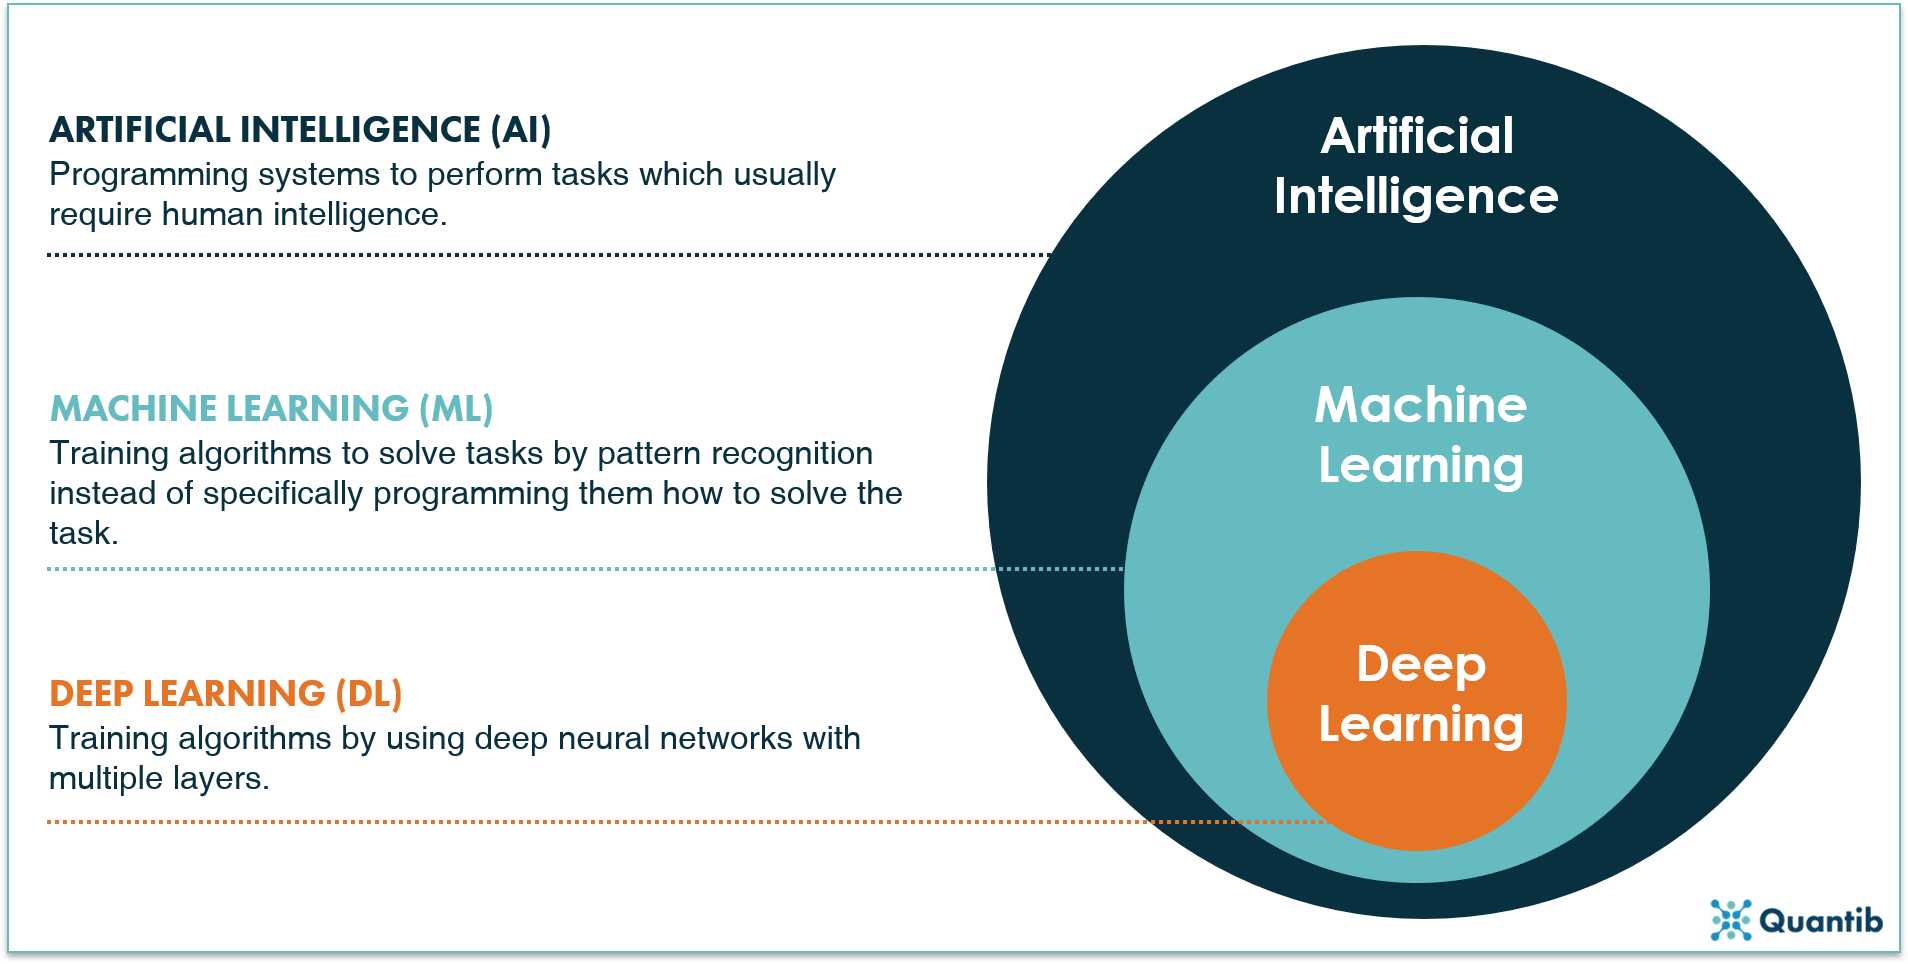 A schematic representation of how artificial intelligence, machine learning and deep learning are related